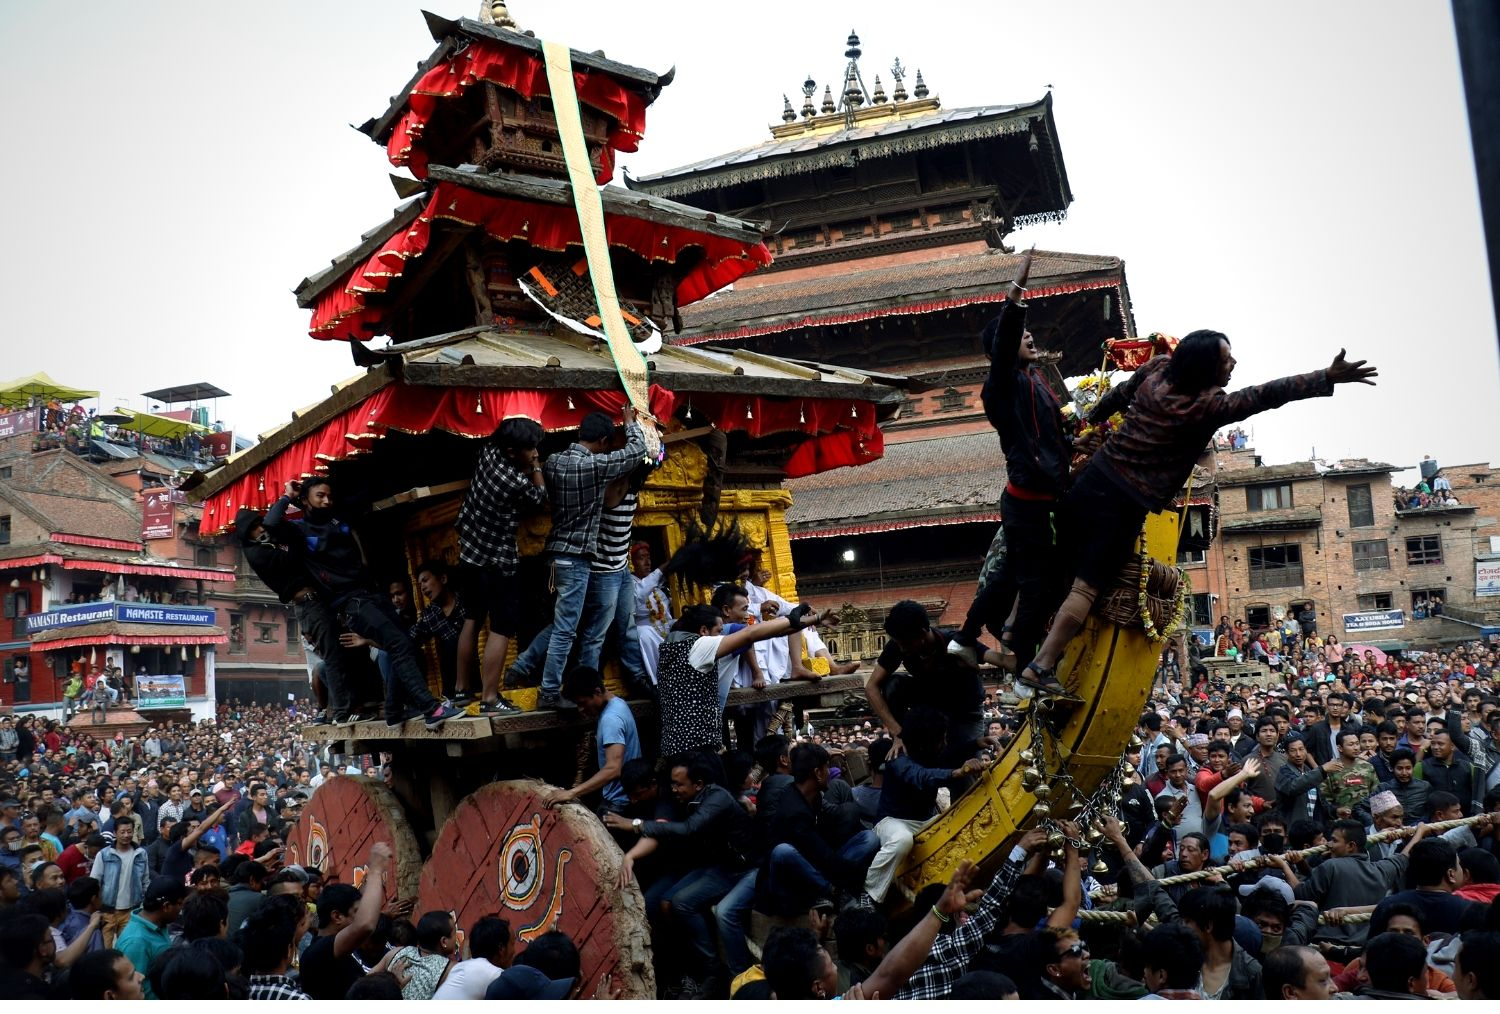 festivals and ceremonies in valley